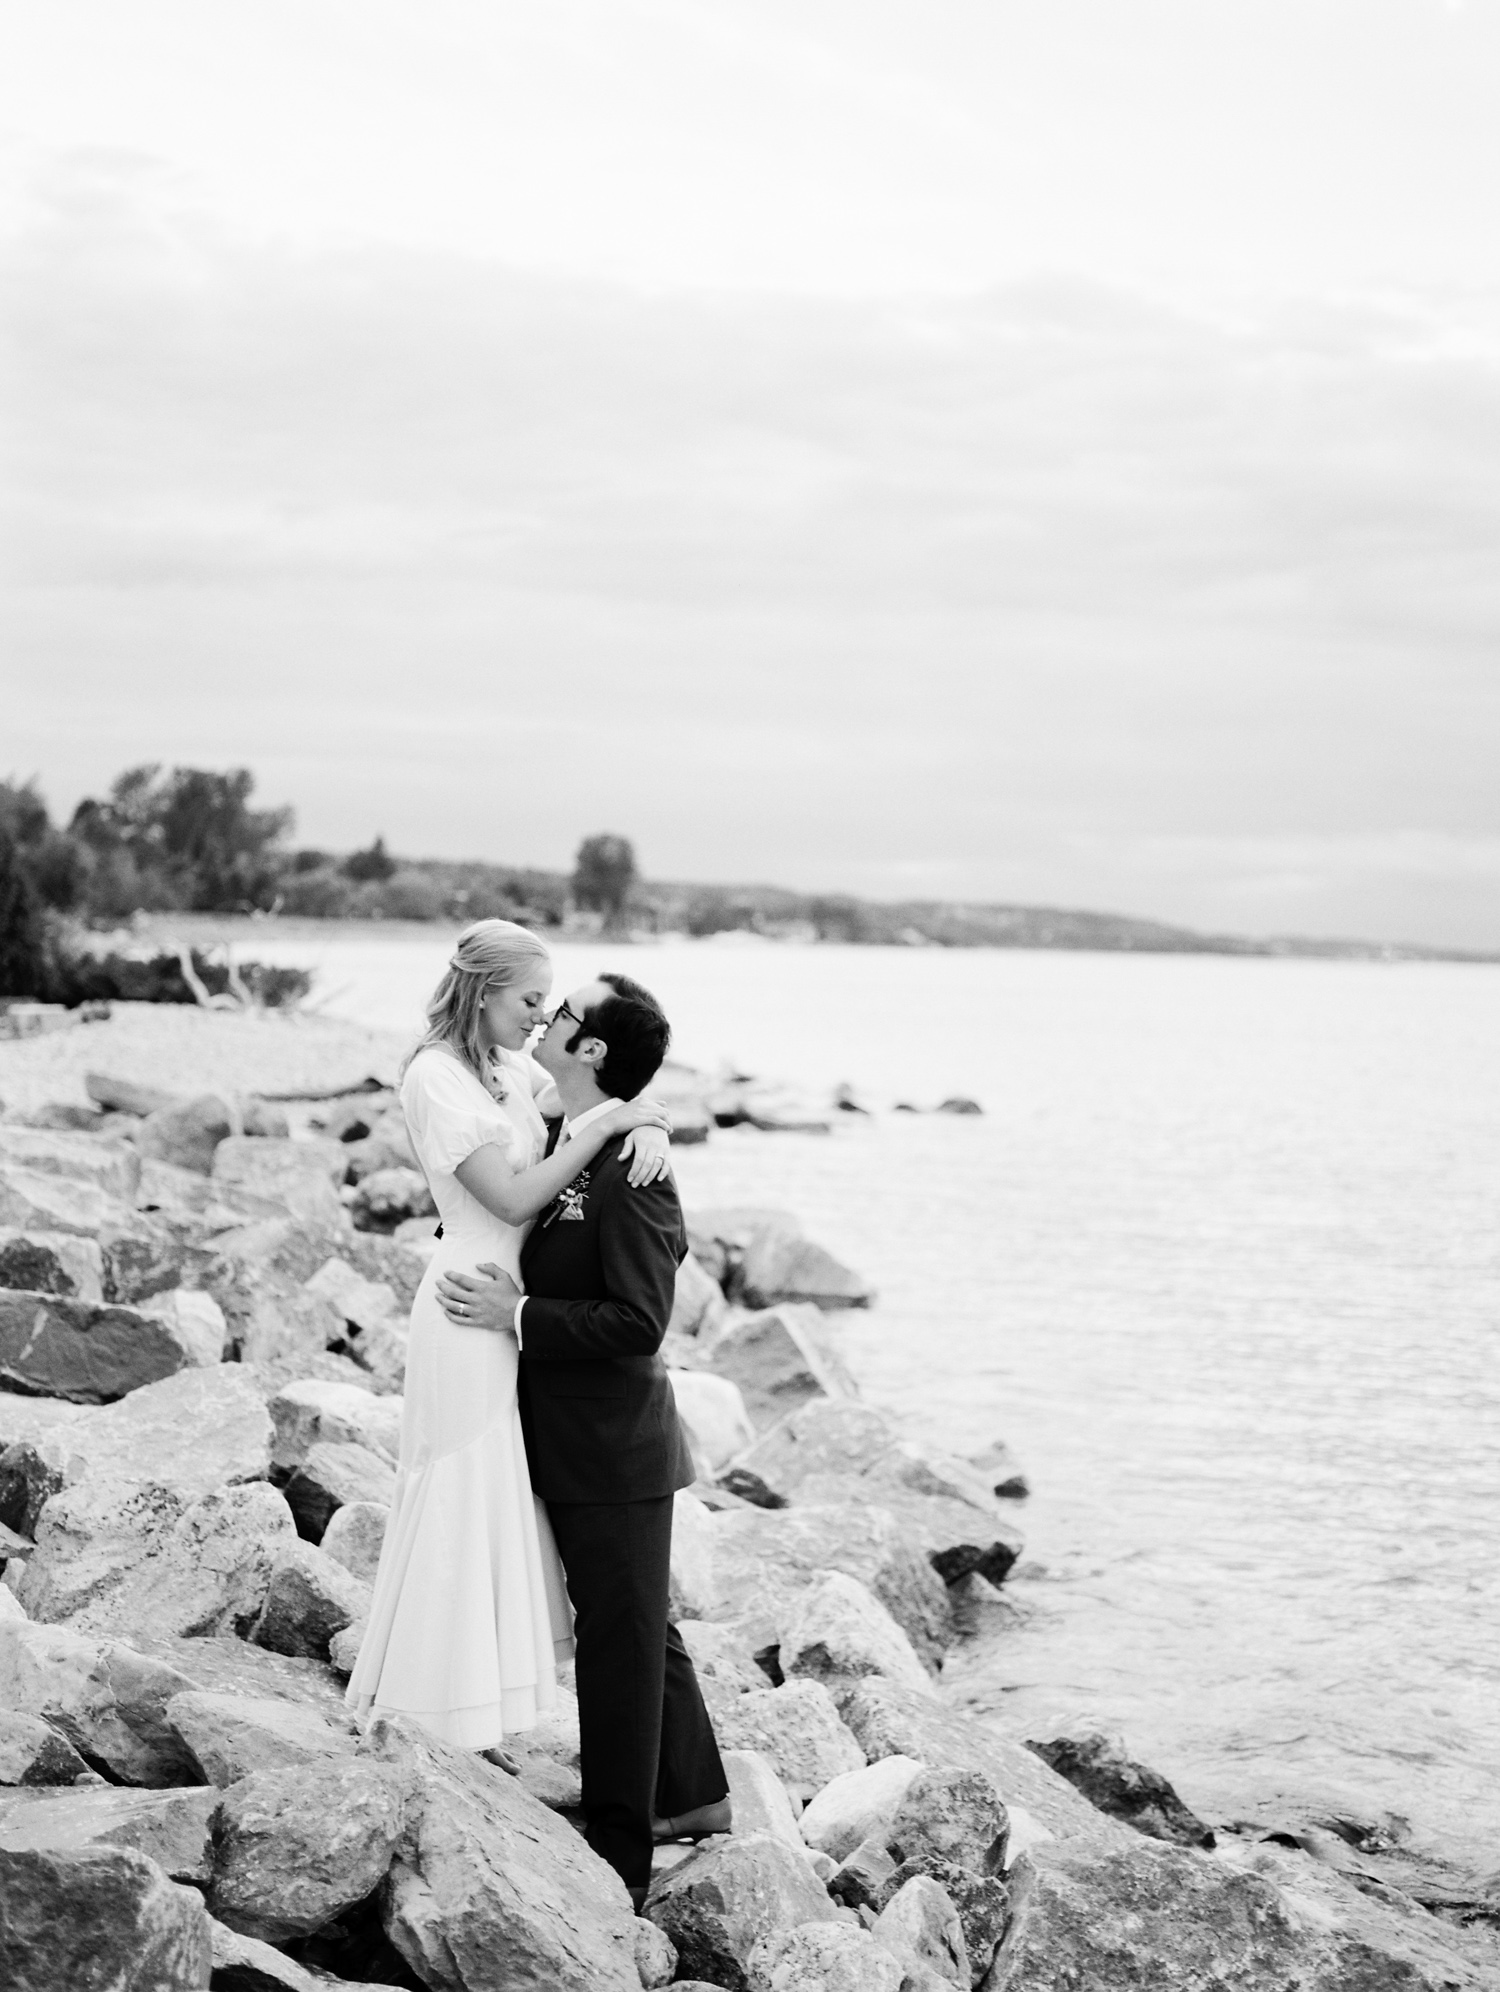 A bride and groom embrace on the coast of Lake Michigan during their Petoskey wedding